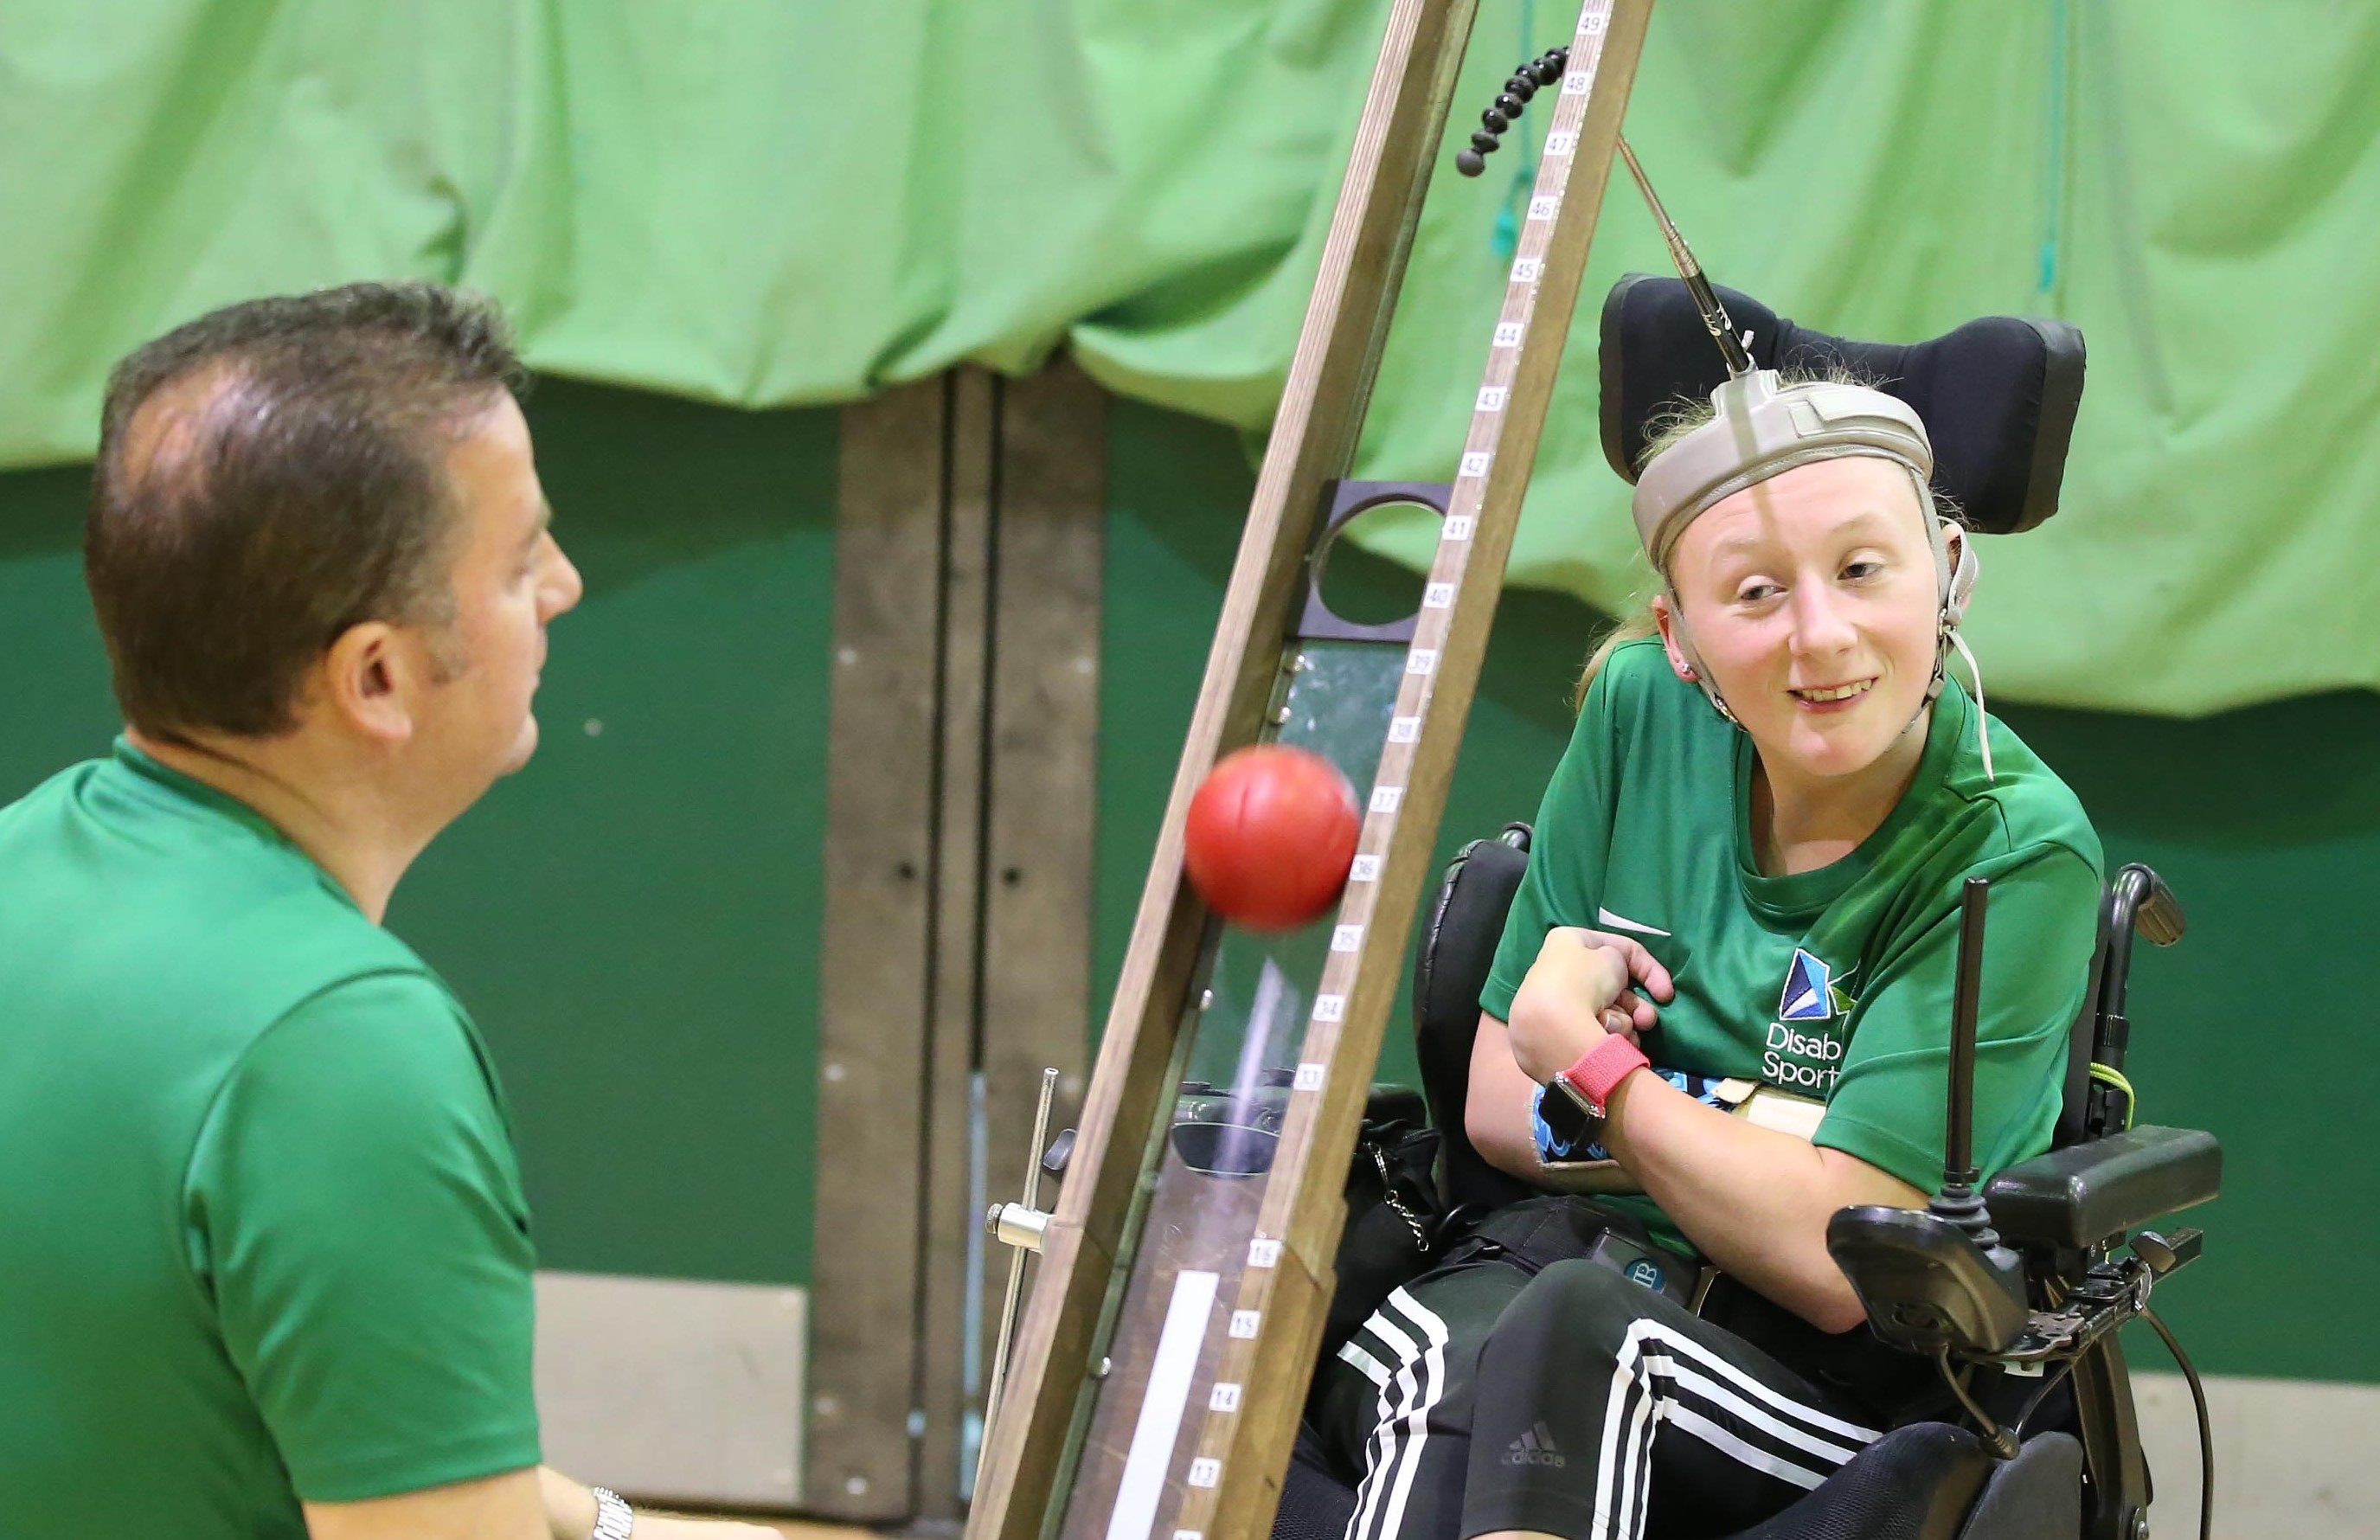 An image of Robyn pushing the ball with her father Davey in front of her as her ramp assistant